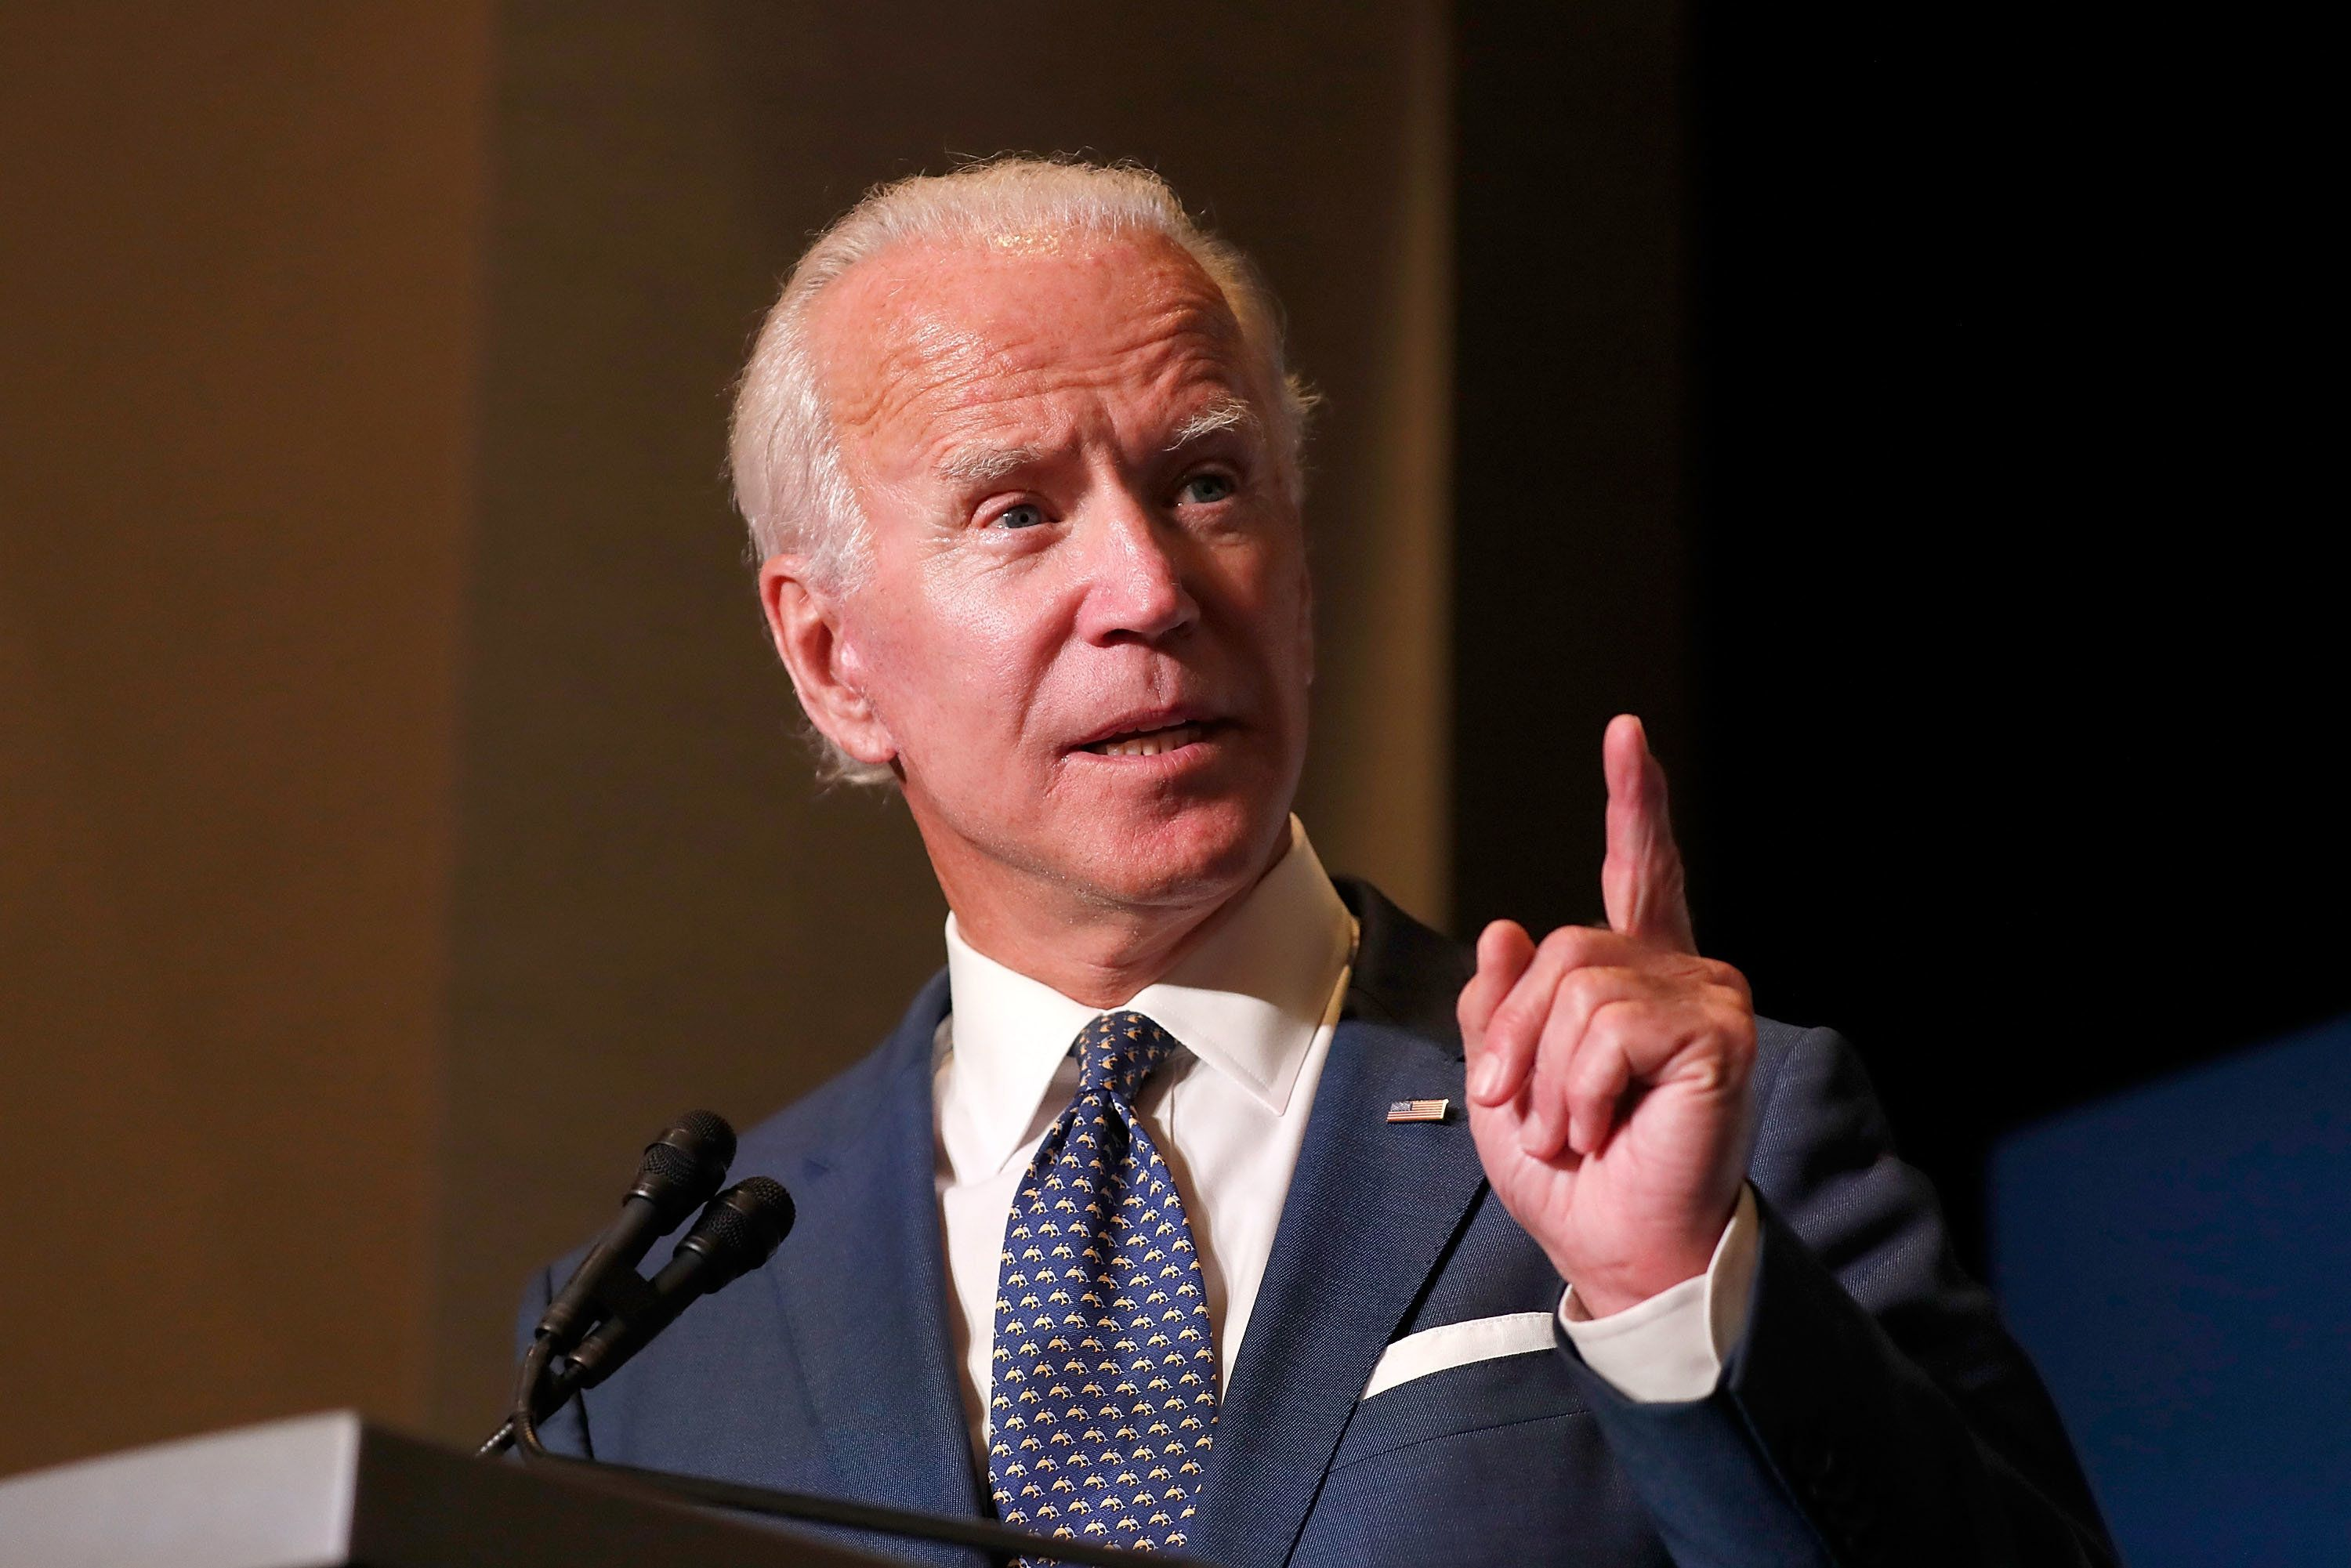 WASHINGTON, DC - SEPTEMBER 20:  Former U.S. Vice President Joe Biden speaks at the Biden Cancer Summit Welcome Reception at Intercontinental Hotel on September 20, 2018 in Washington, DC. The D.C. Summit is the flagship event of more than 450 Biden Cancer Community Summits convening on September 21, all focused on improving the cancer journey for patients, their families, and caregivers.  (Photo by Paul Morigi/Getty Images)